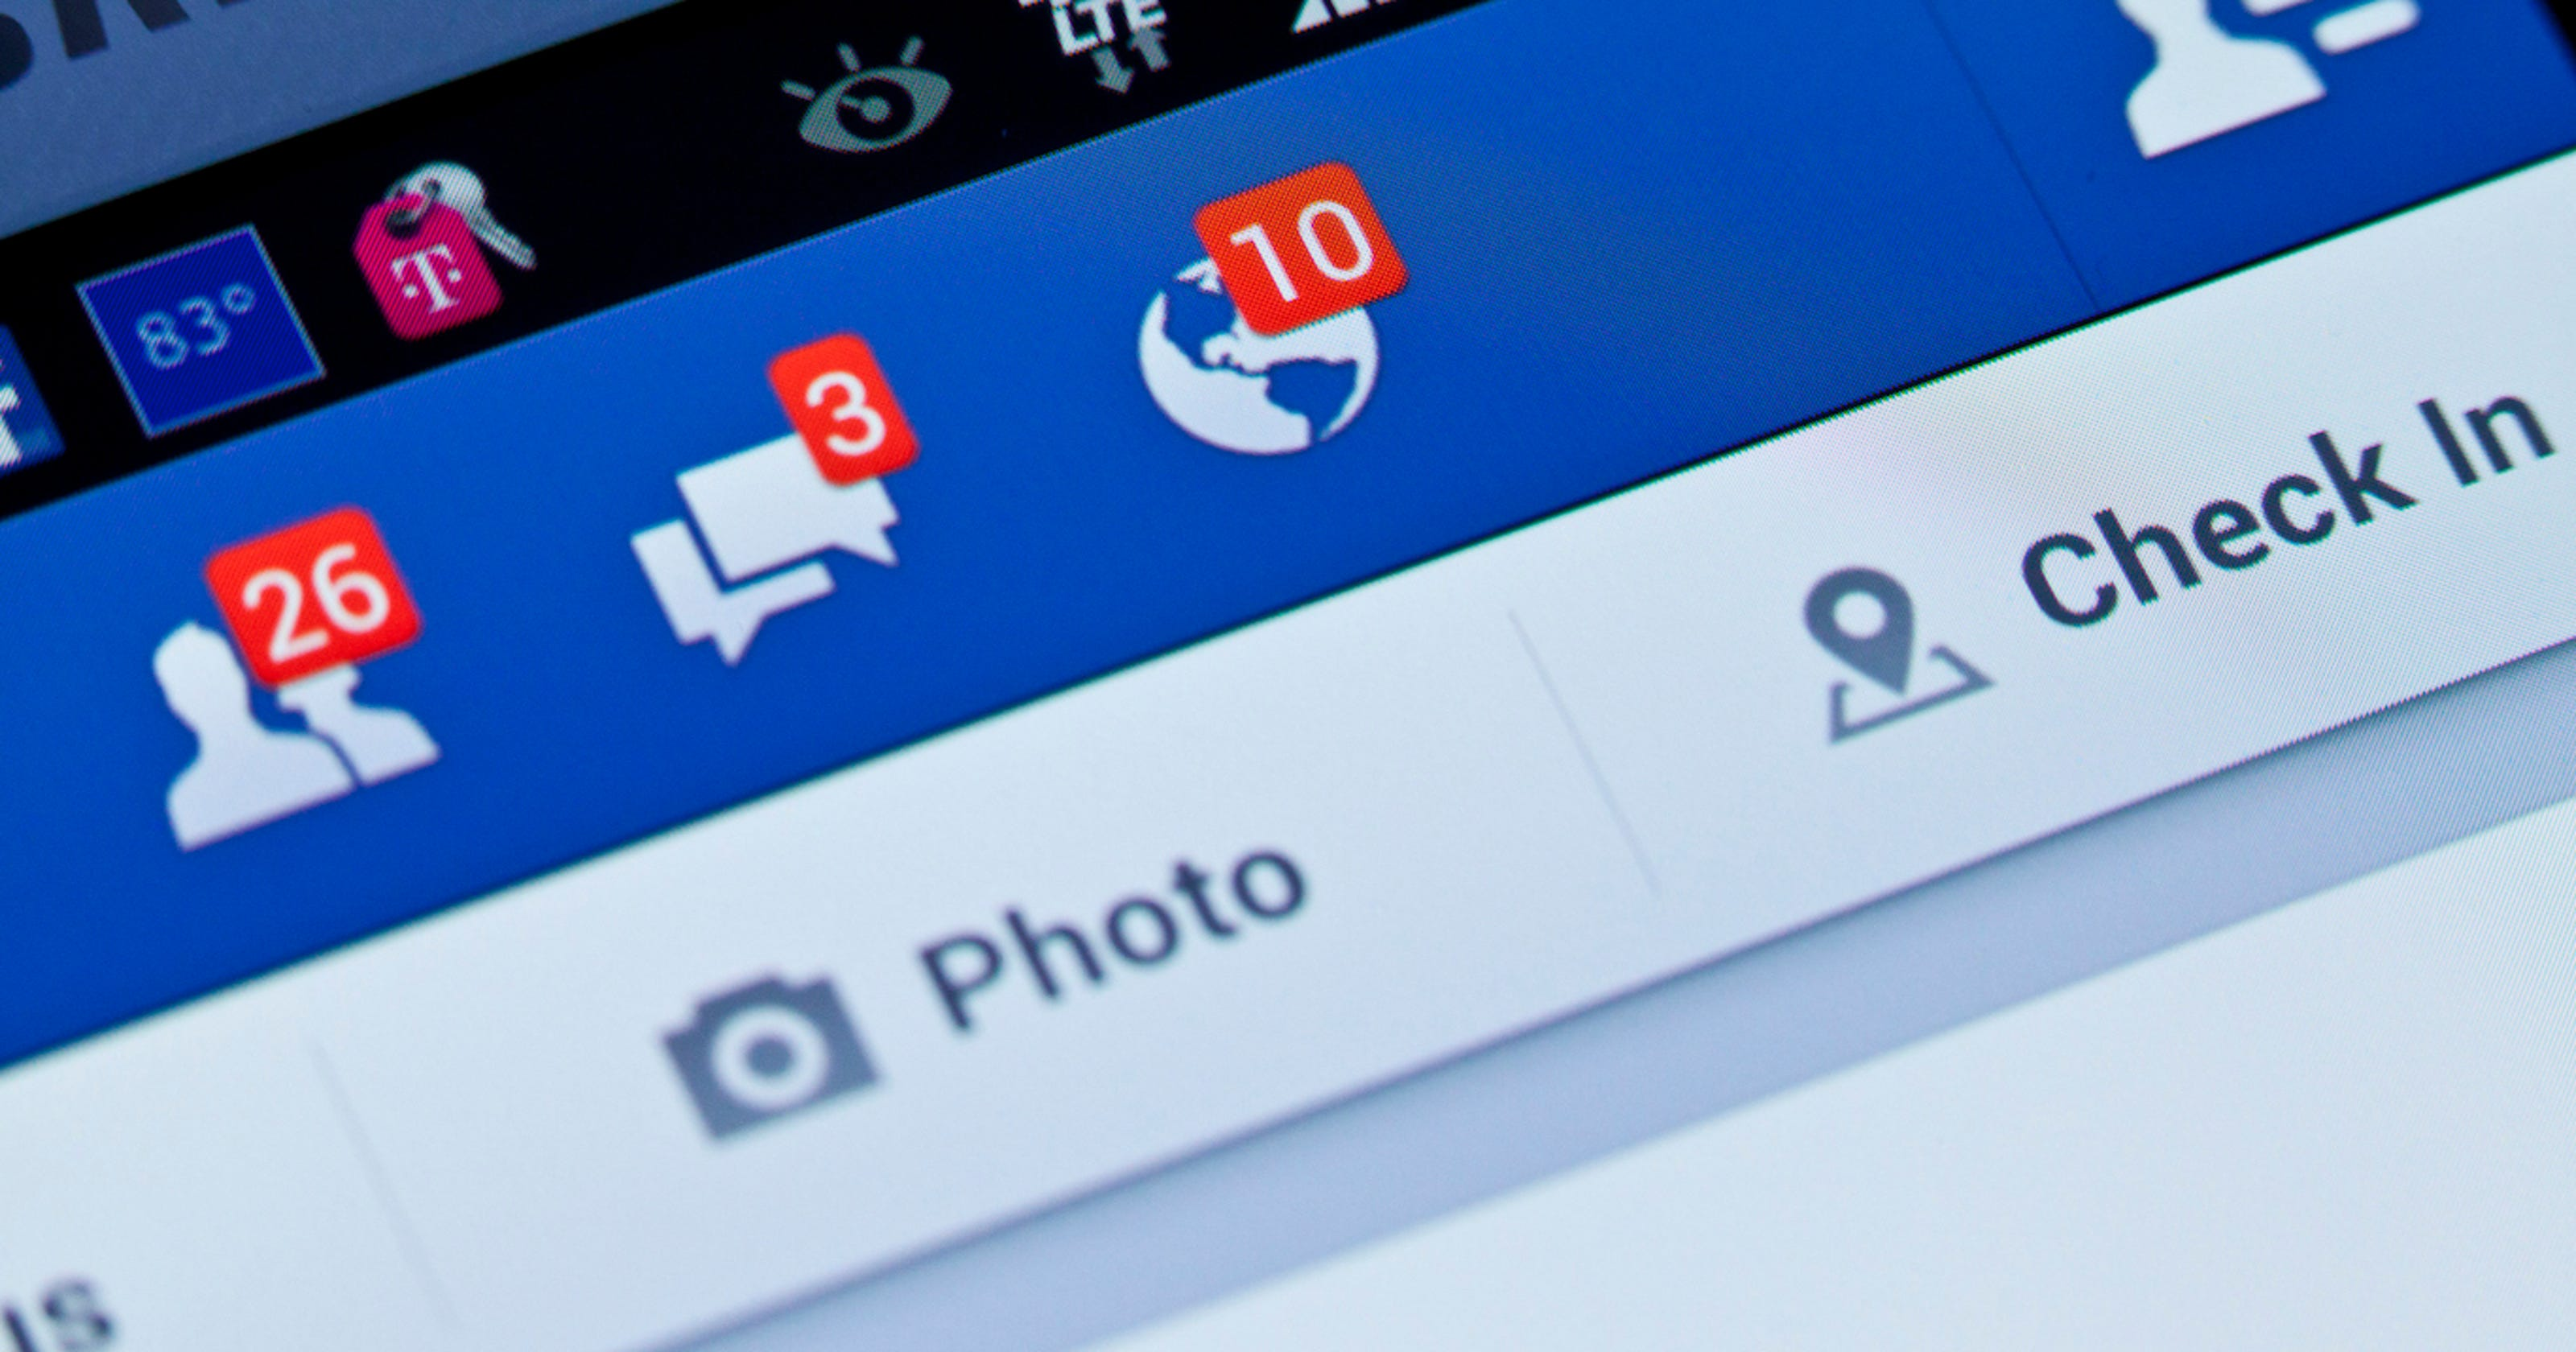 Facebook users: Half say they don't understand news feed